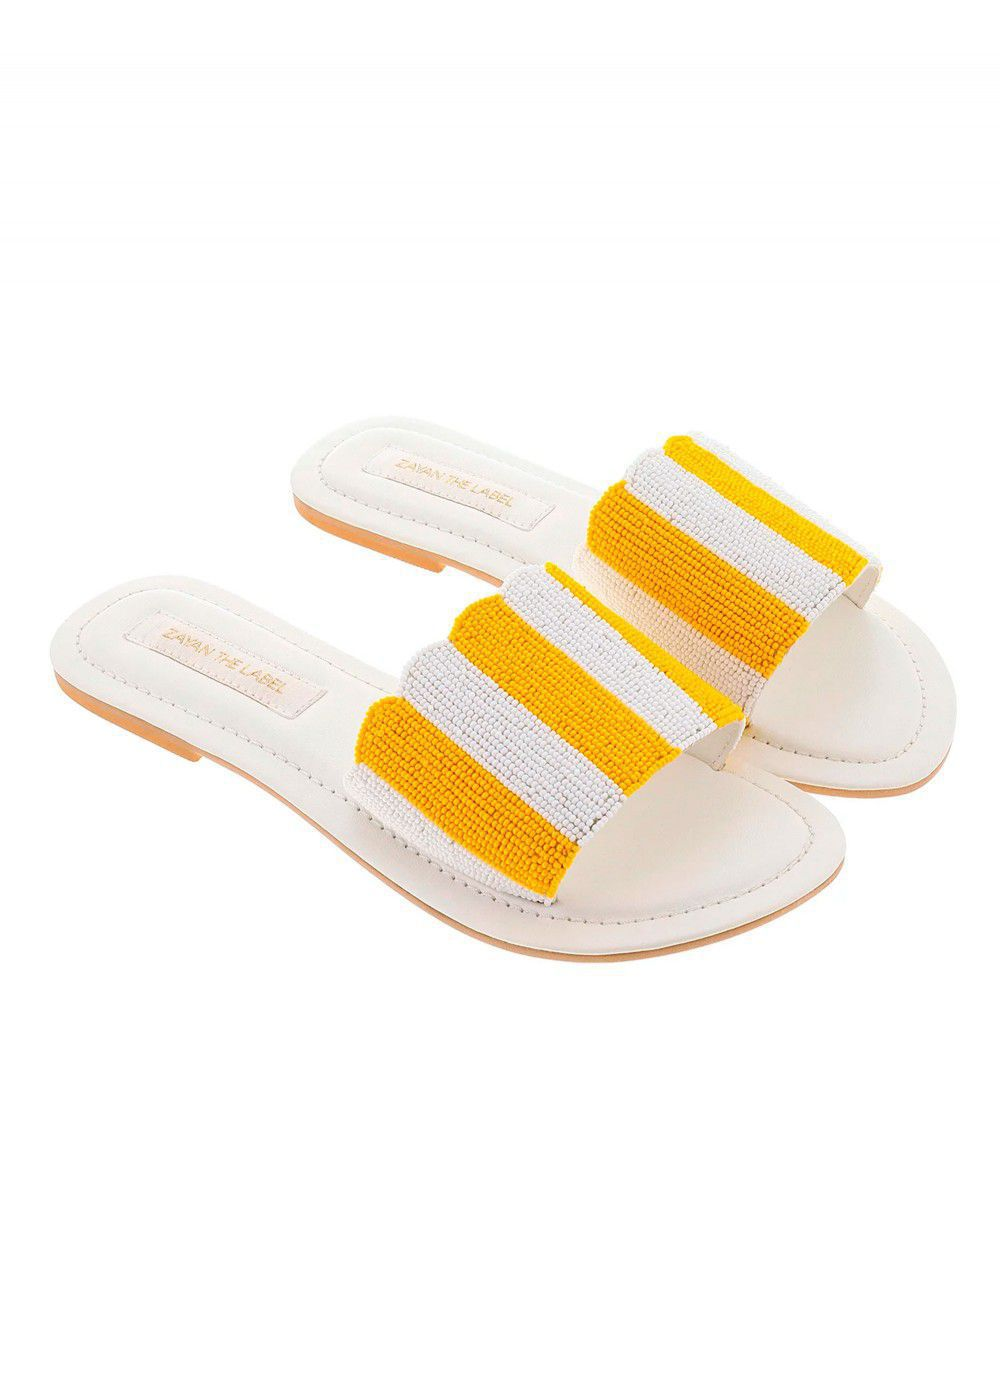 Zayan The Label Positano Yellow Slides